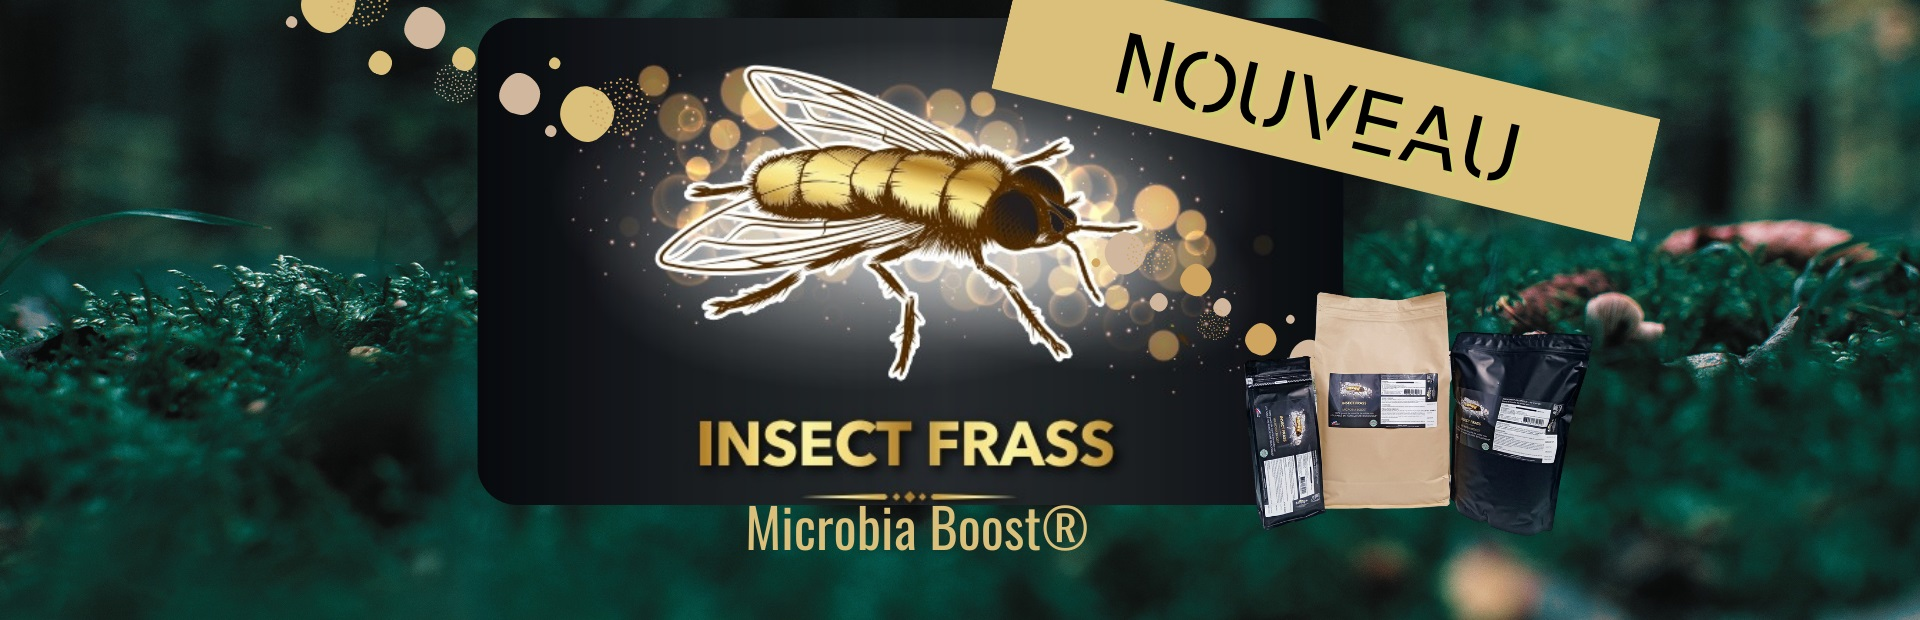 INSECT FRASS MICROBIA BOOST